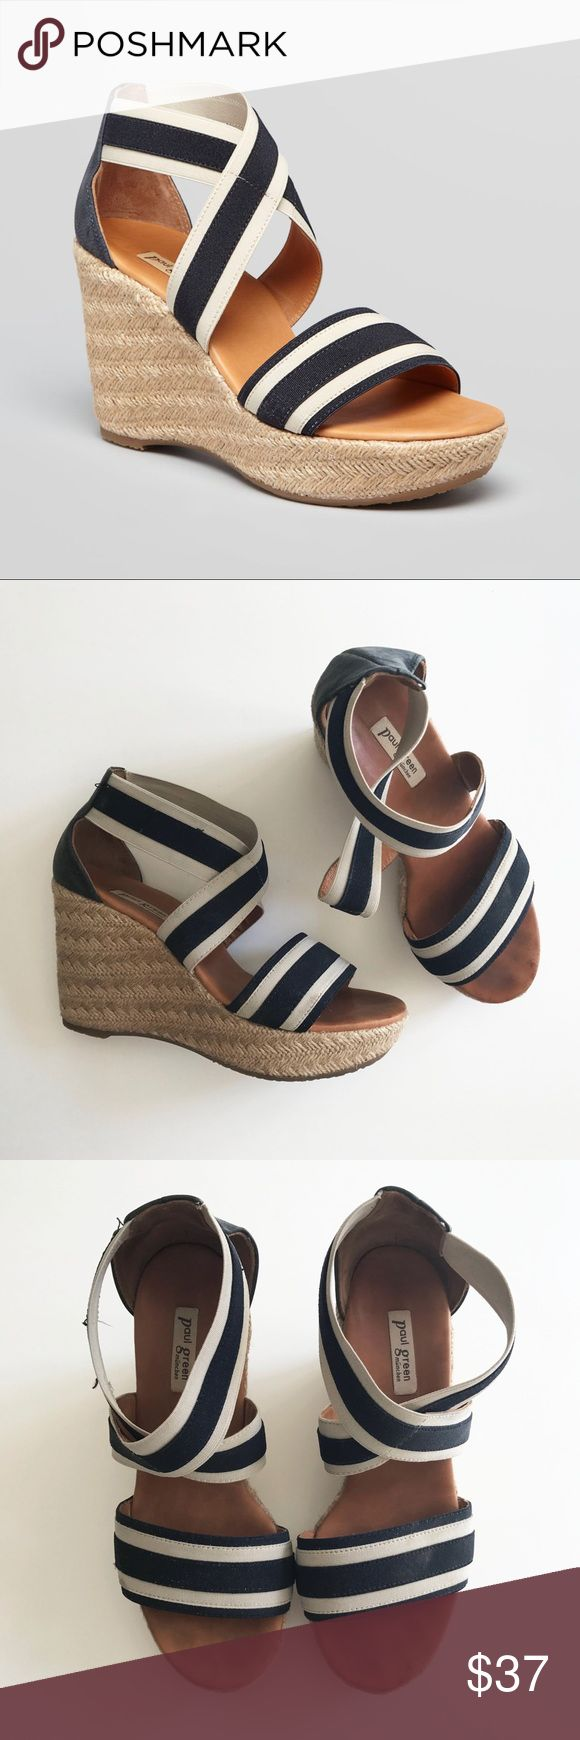 Paul Green Nautical Espadrille Wedges ATTENTION: This item is used with signs of wear (minor fraying & fading) but still in great condition! Paul Green Shoes Wedges